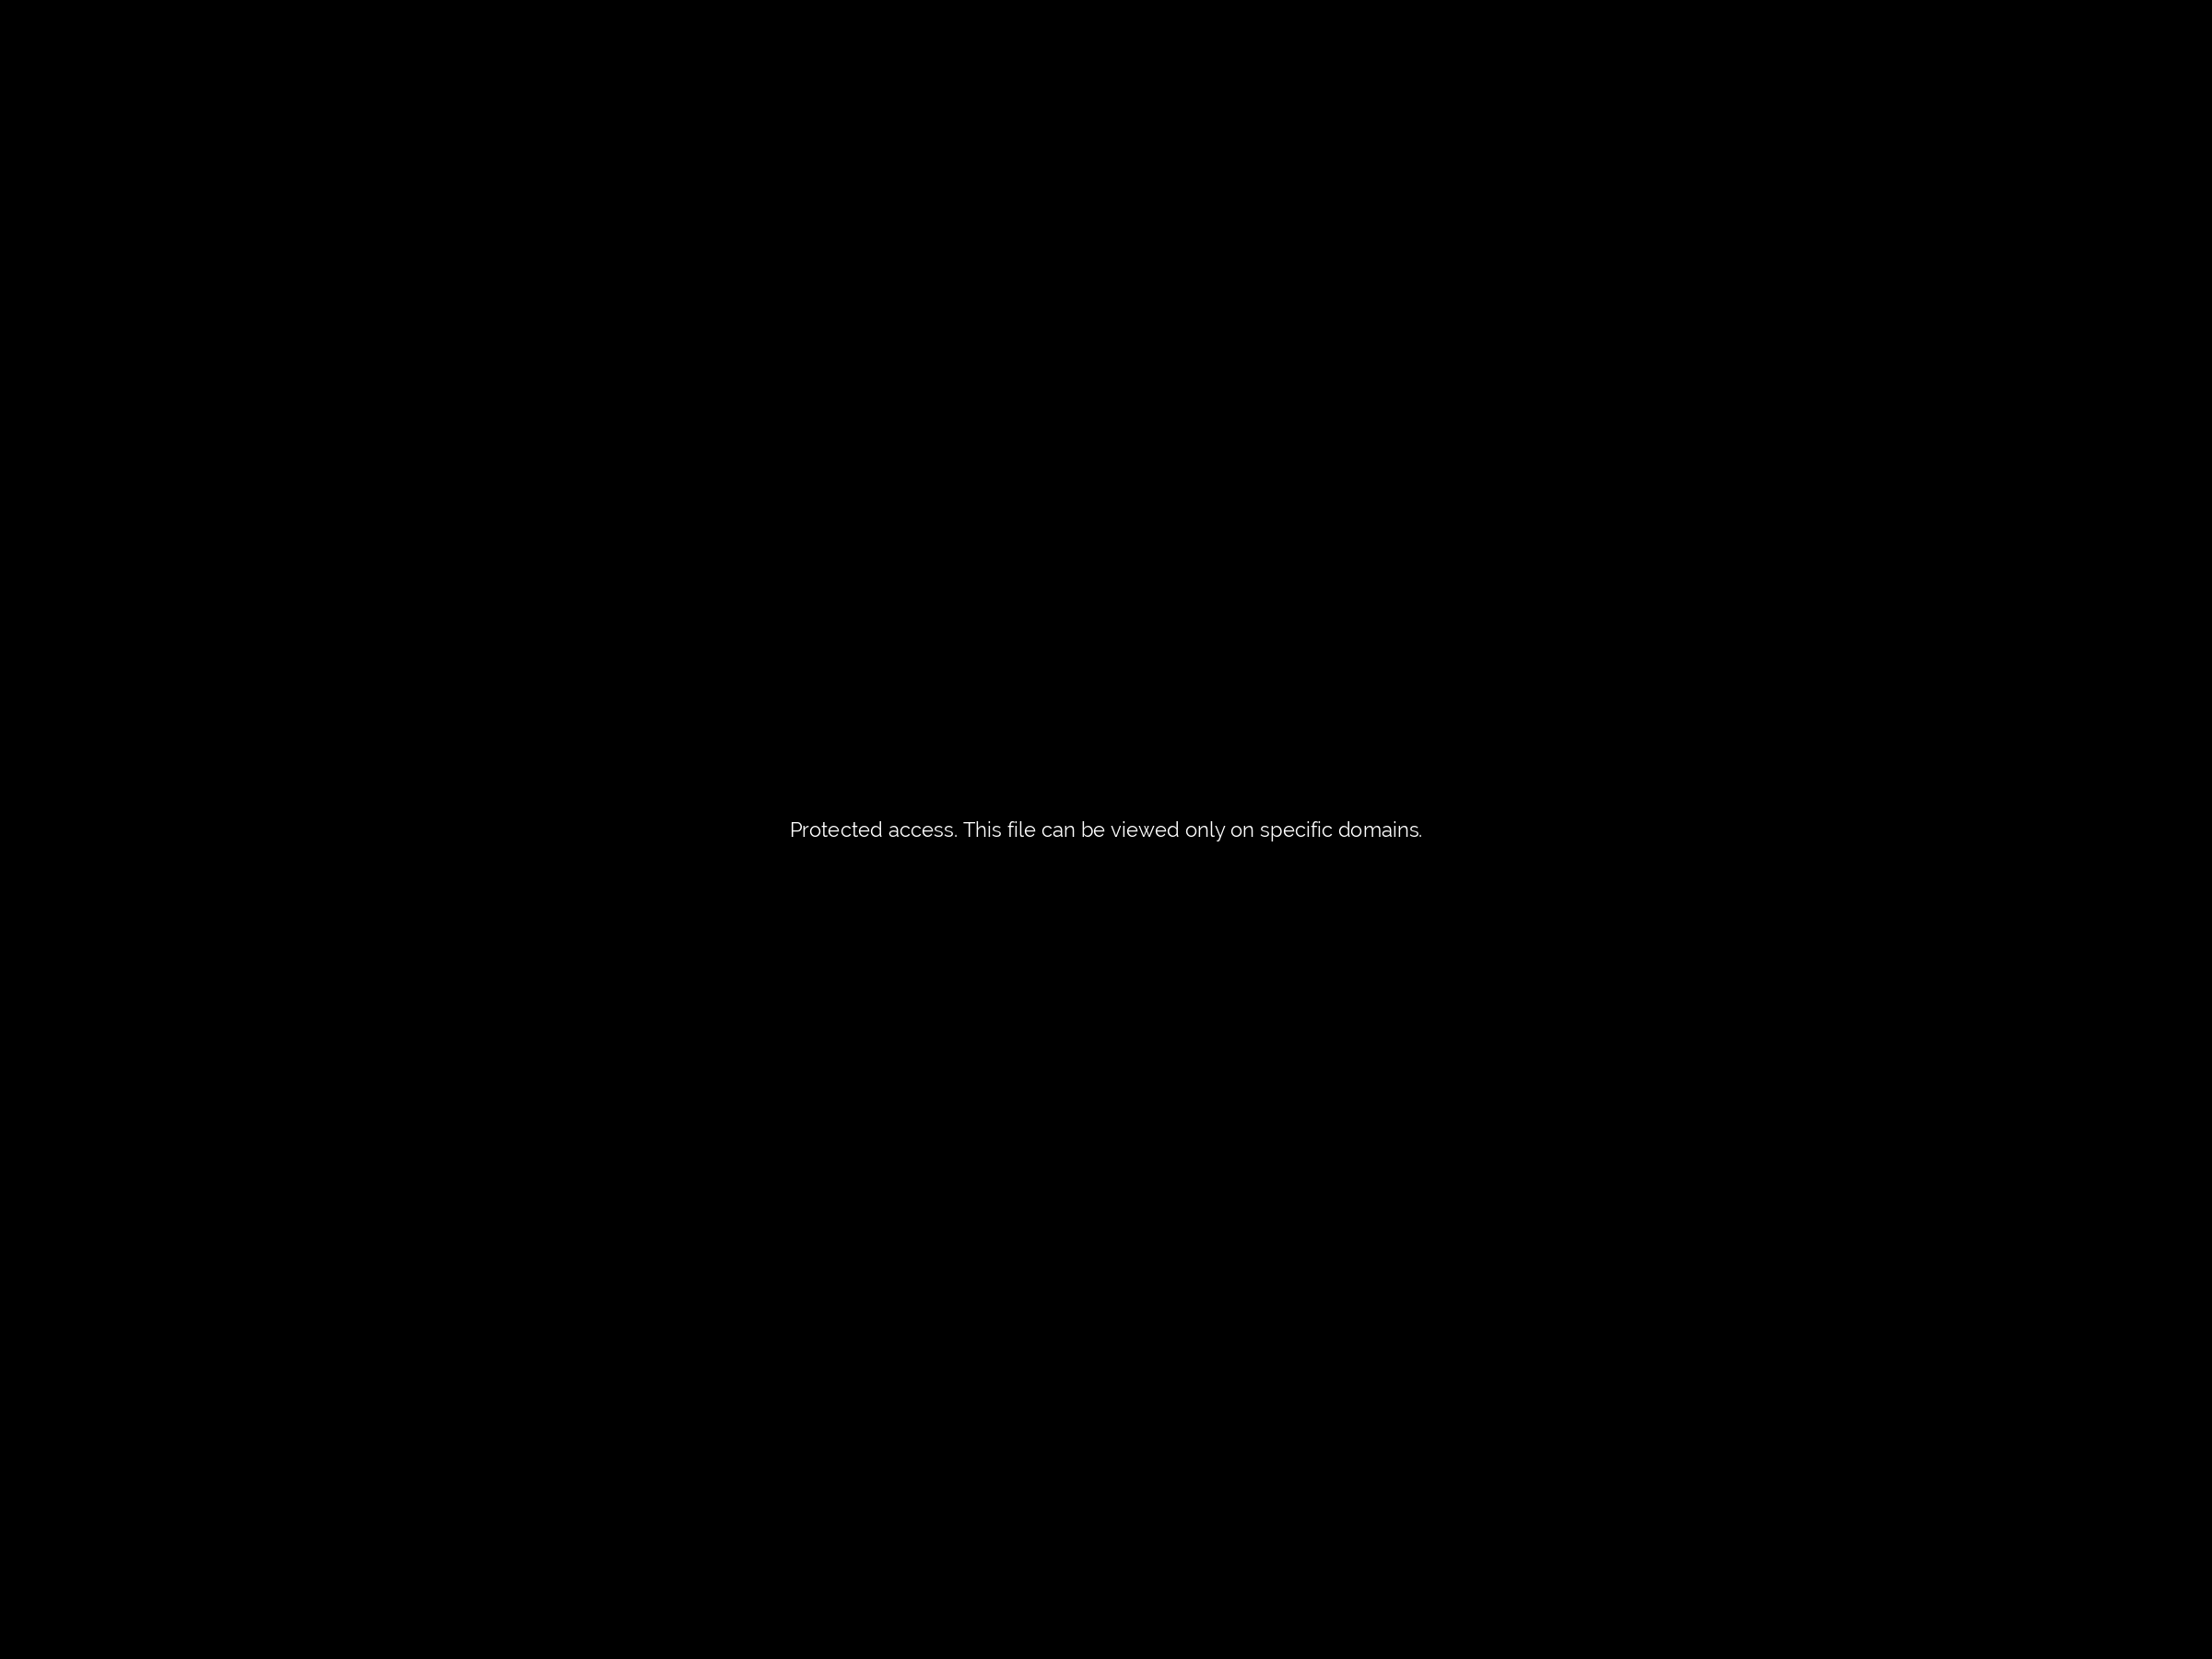 st catherine's monastery - know before you go